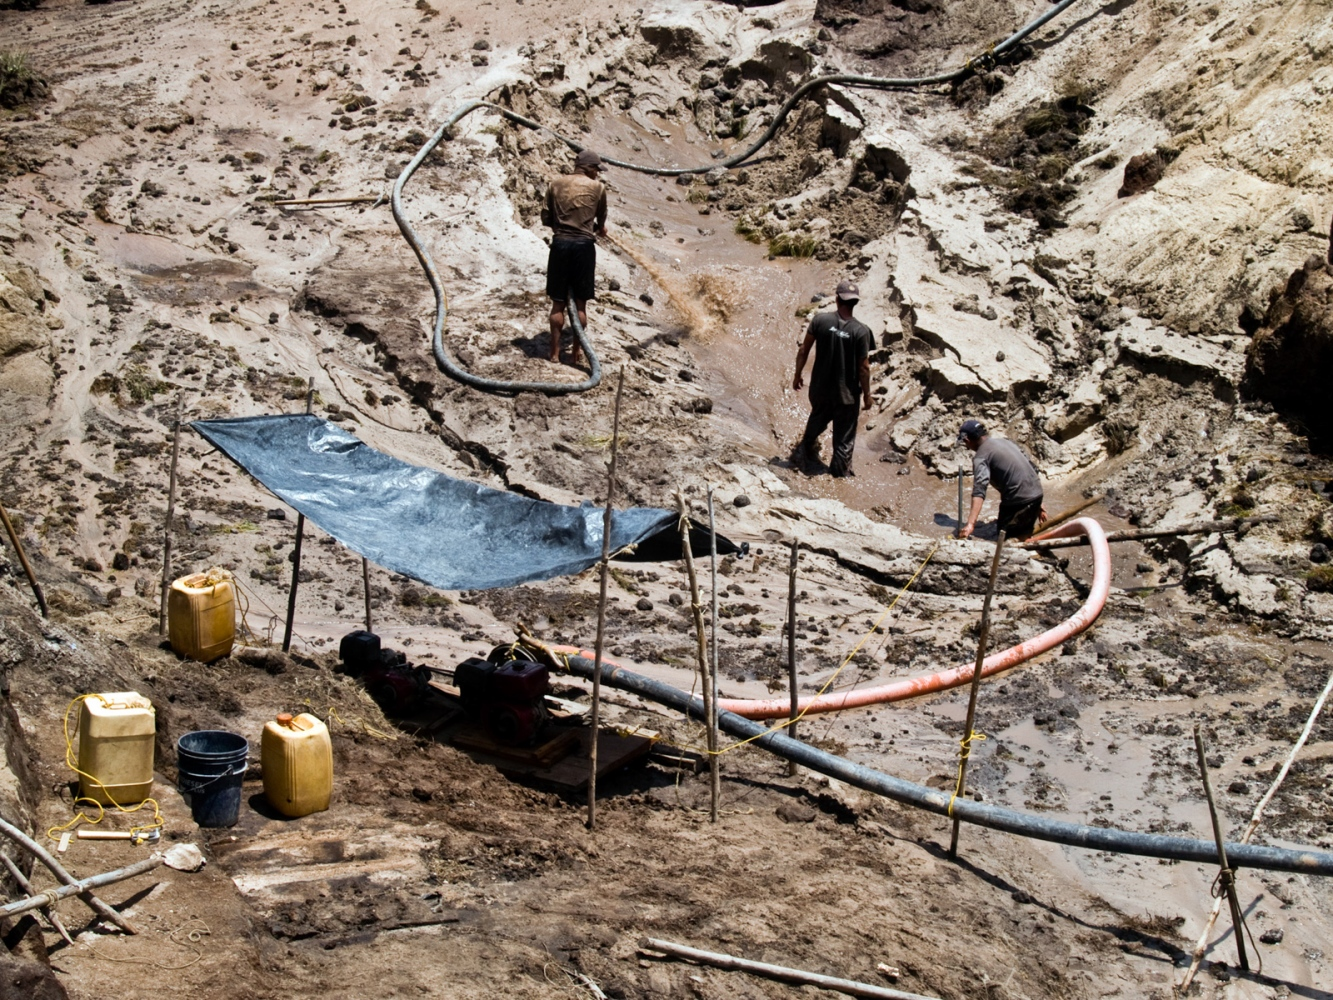 The miners, with the help of small engines that are modified to pump water to the ground with high power, open holes of two kilometers in diameter and 5 meters in depth in less than two weeks.